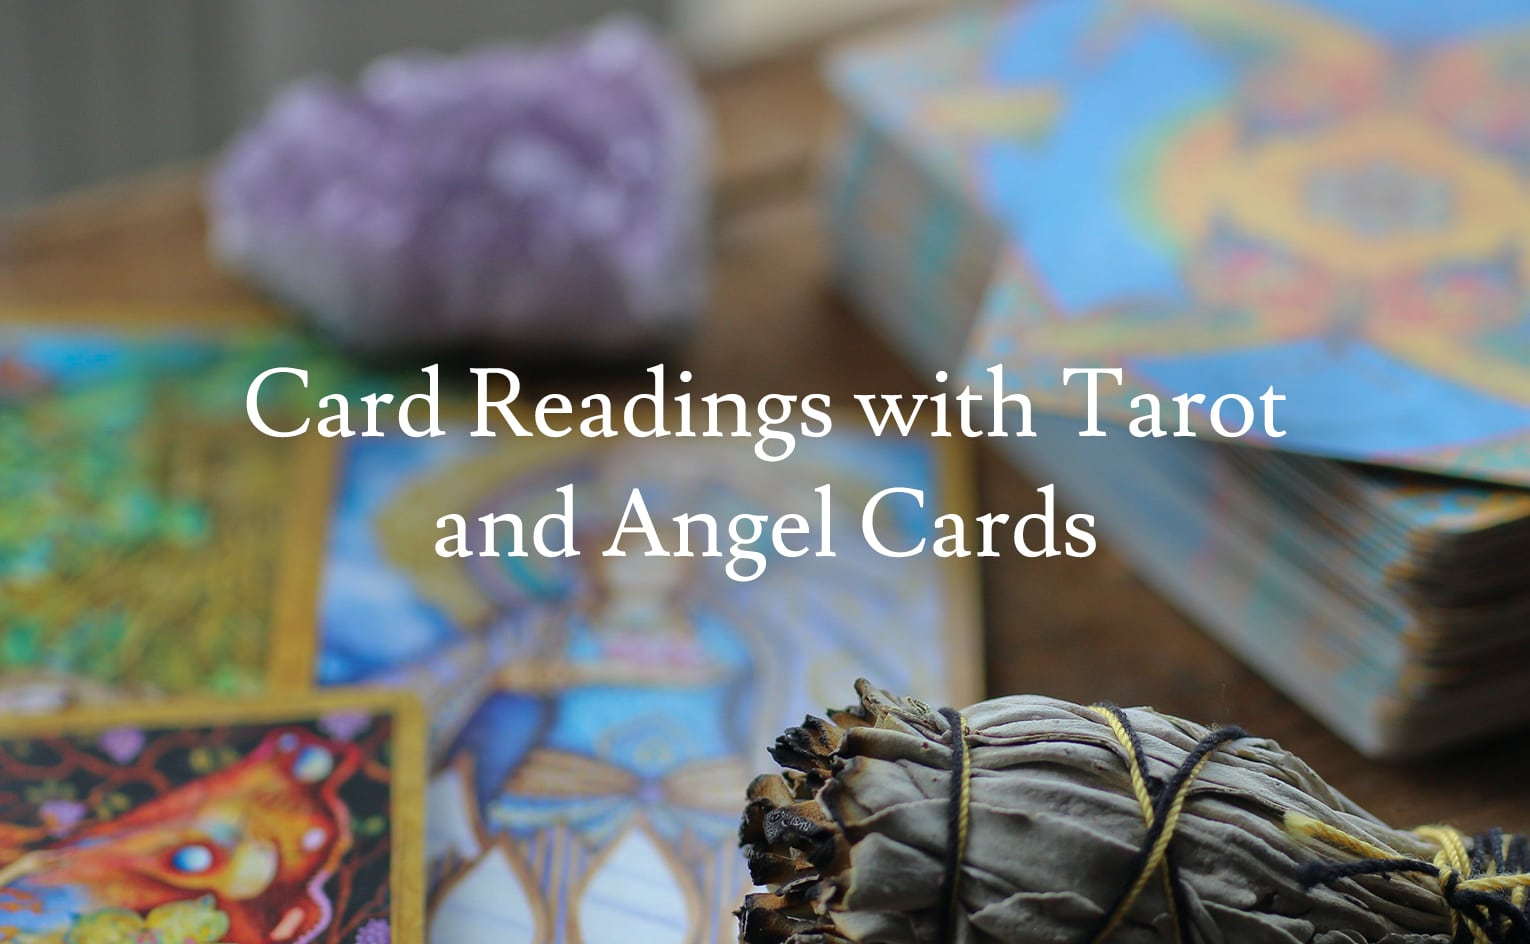 Card Readings with Tarot and Angel Cards